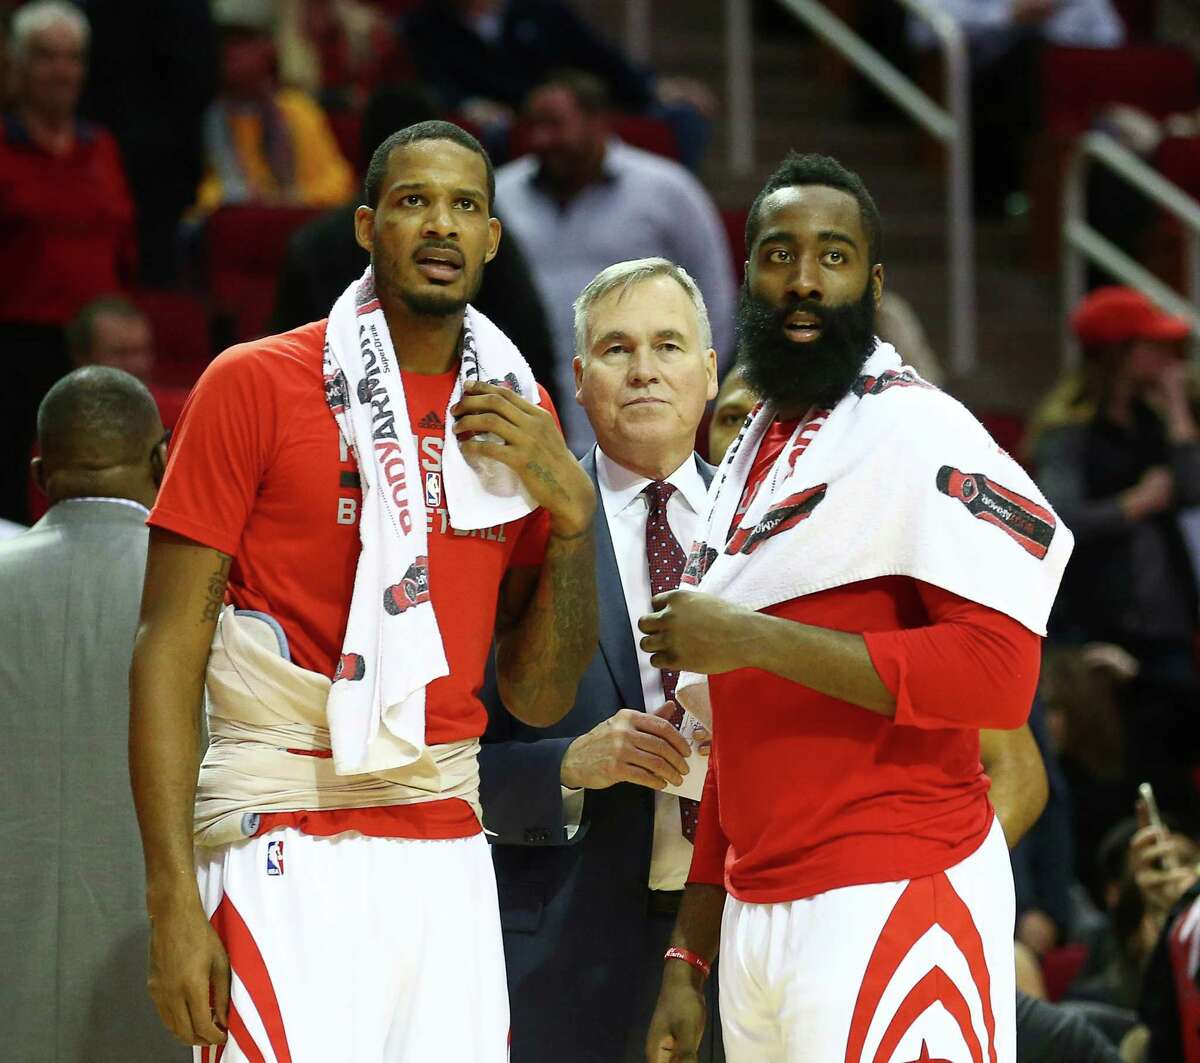 Houston Rockets head coach Mike D'Antoni, center, talks with forward Trevor Ariza (1), left, and guard James Harden (13) during the fourth quarter of an NBA game at the Toyota Center, Wednesday, Dec. 7, 2016, in Houston.